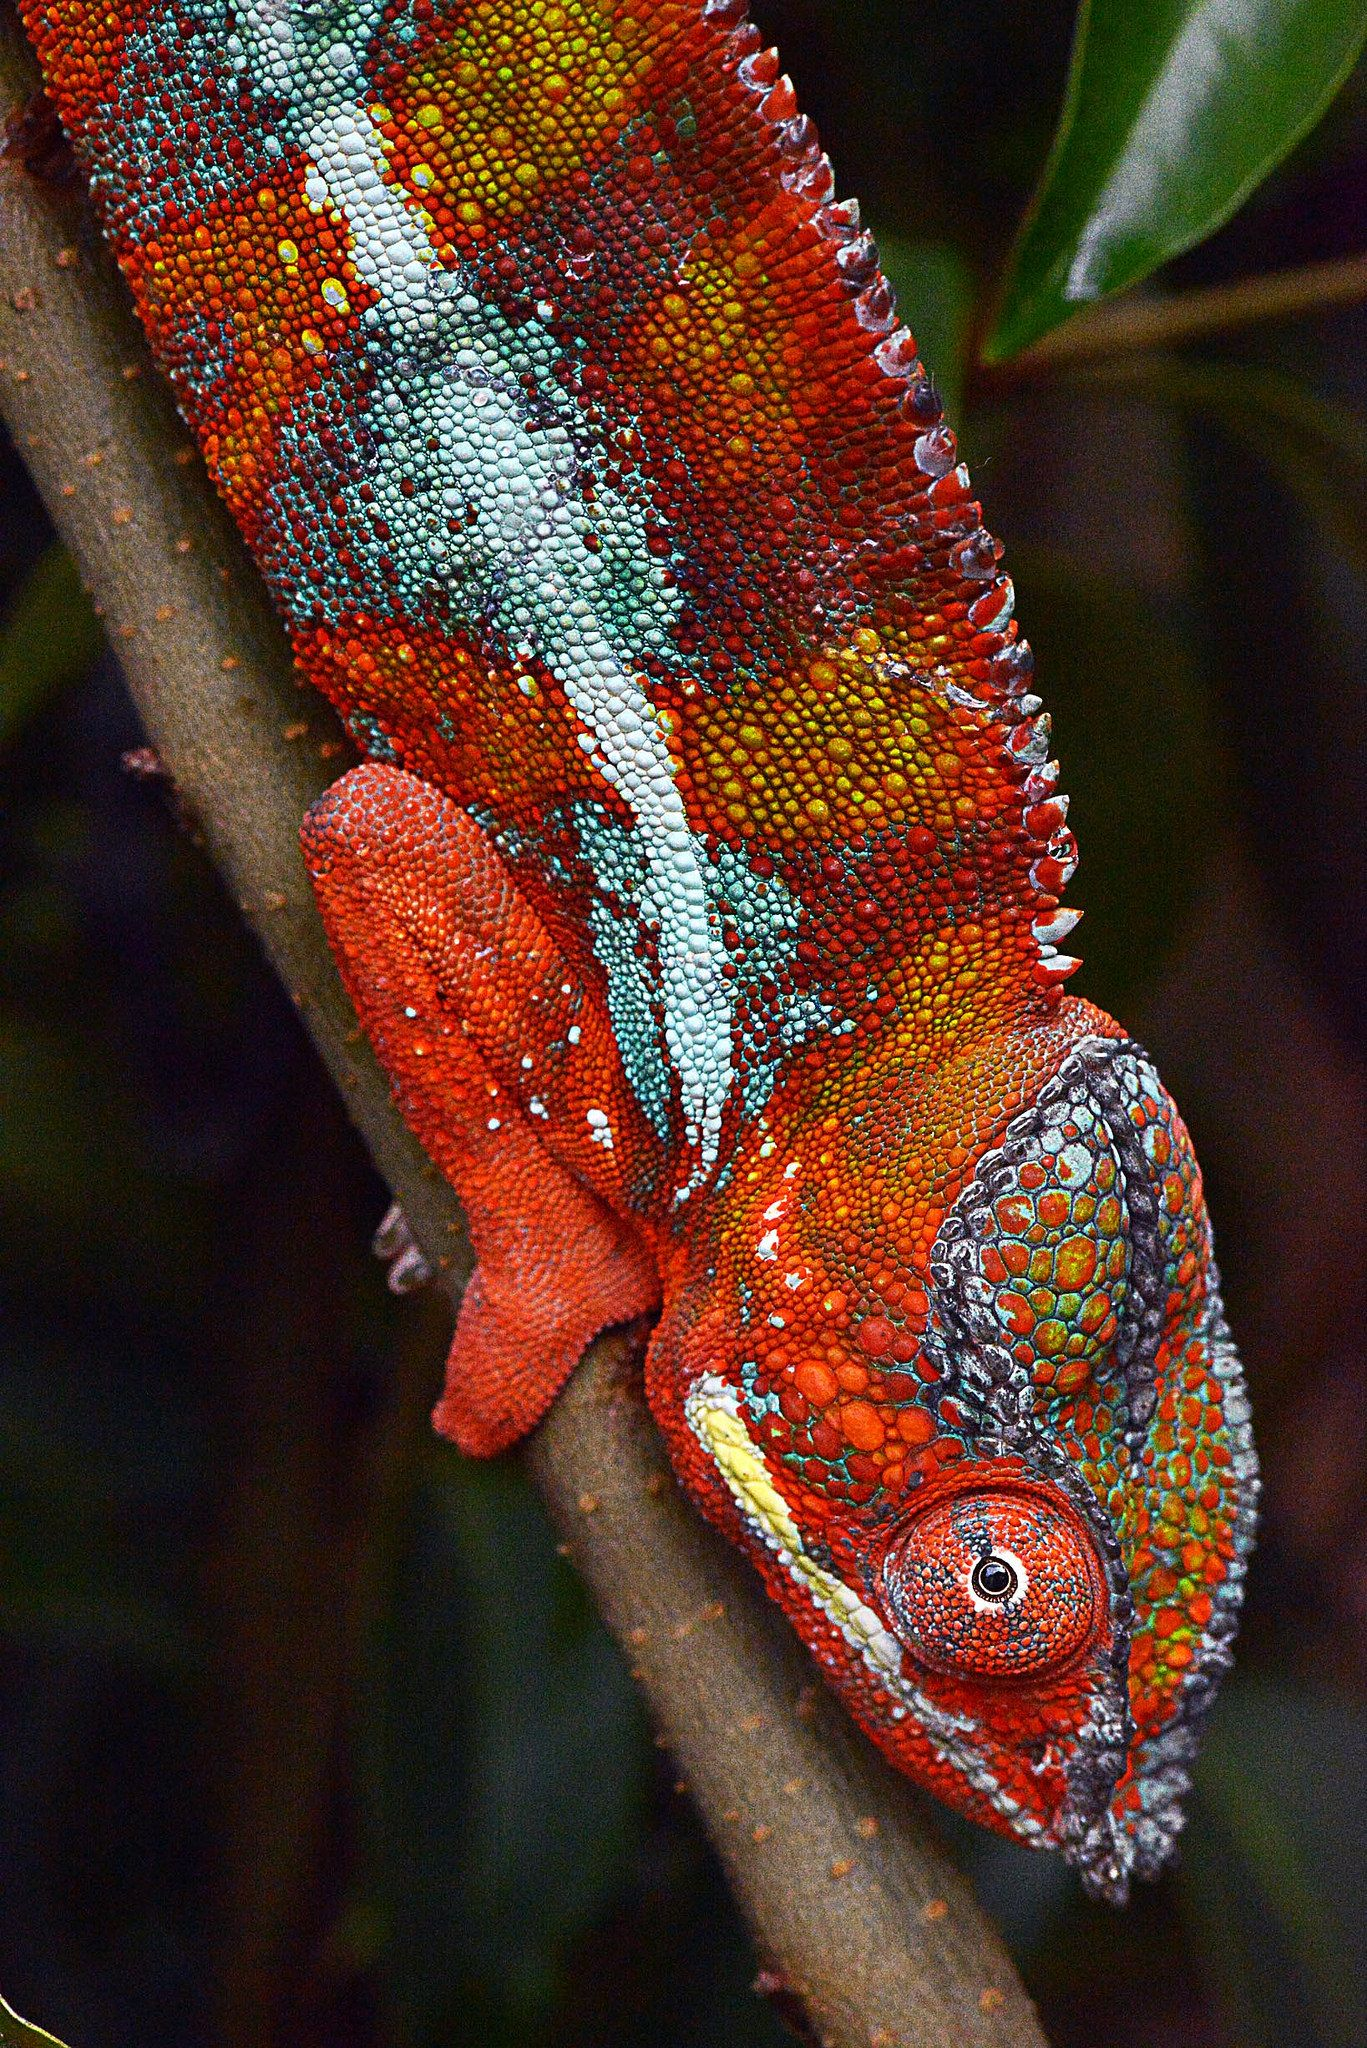 Furcifer pardalis Sirama | This male panther chameleon is from the Sirama locality, near Ambilobe, Madagascar | by Olaf Pronk